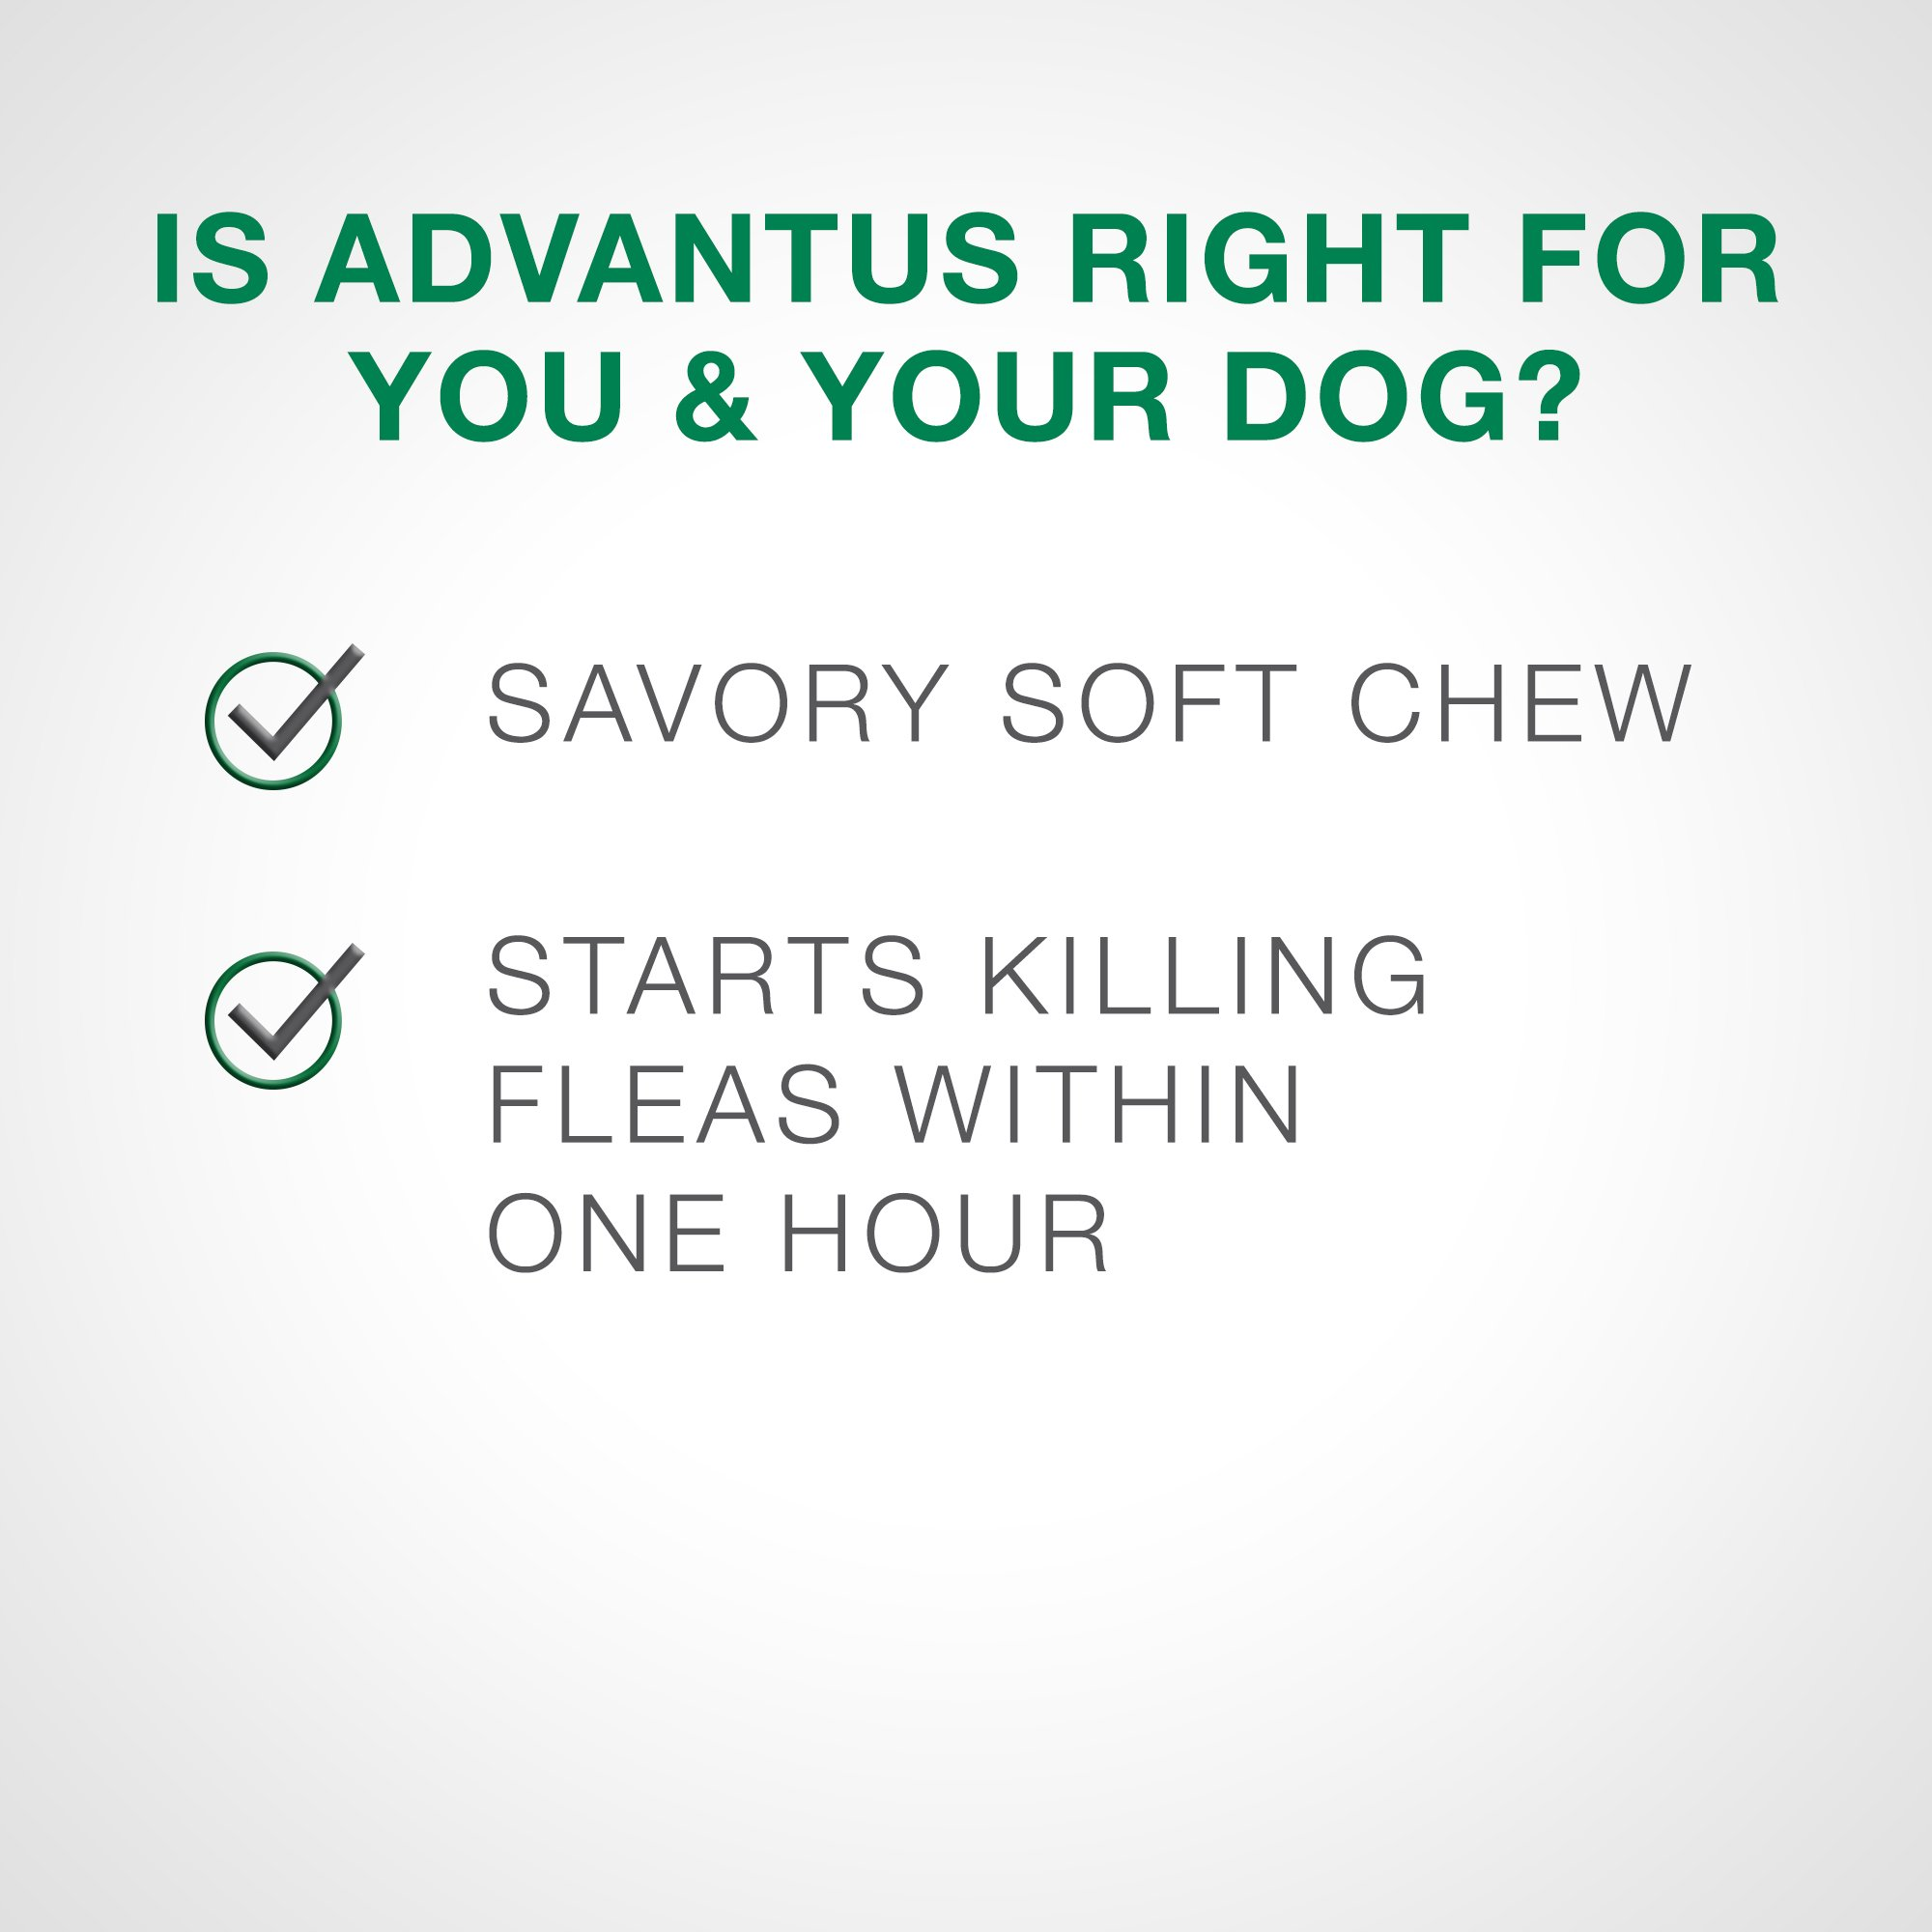 Advantus 30 Soft Chew for Small Dog, 4 lb or Greater